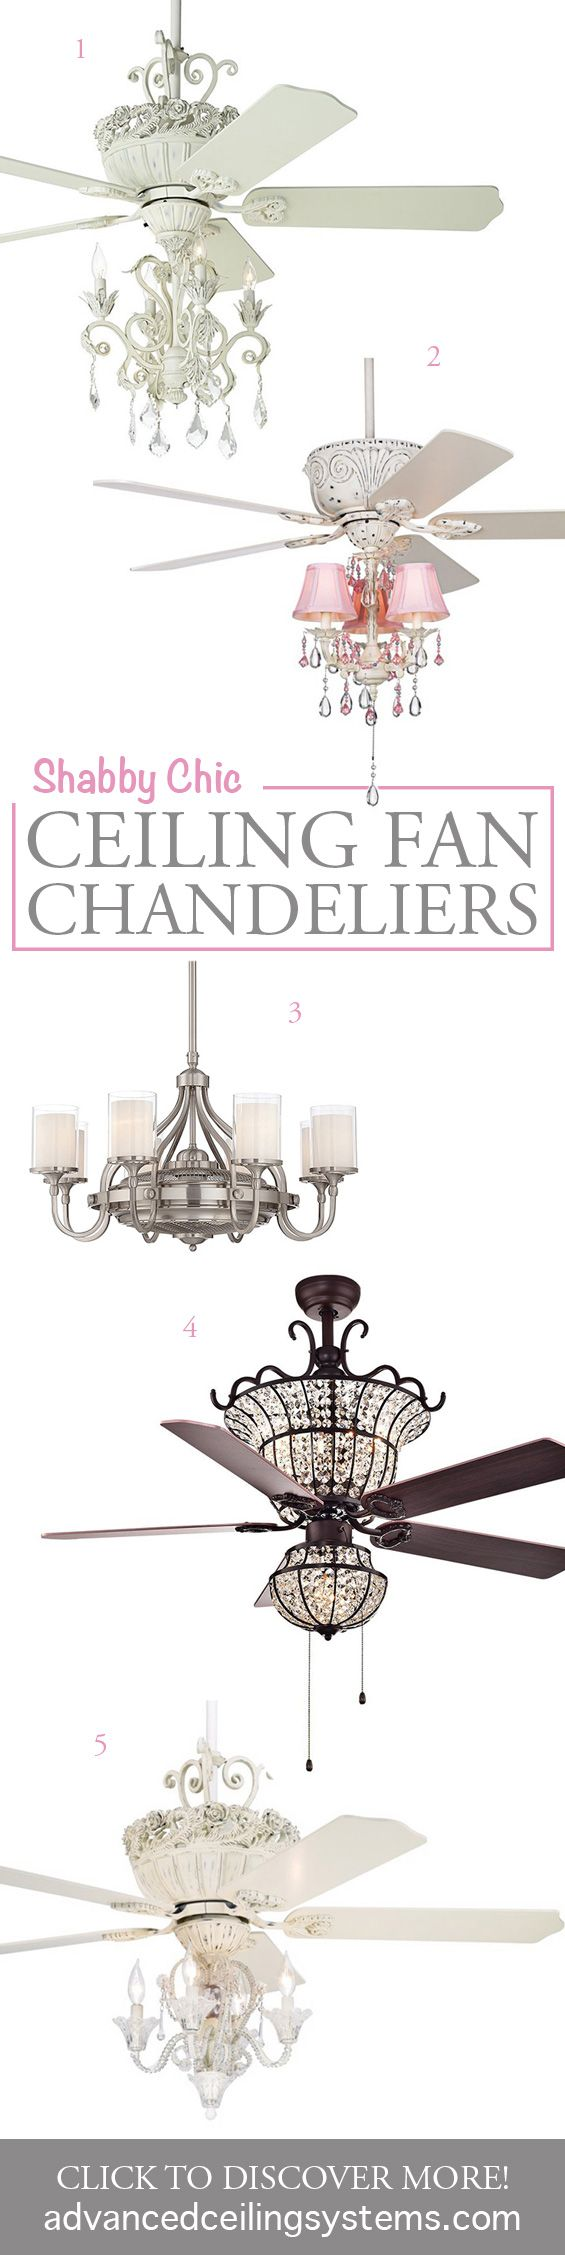 5 unique shabby chic ceiling fan chandeliers aloadofball Image collections